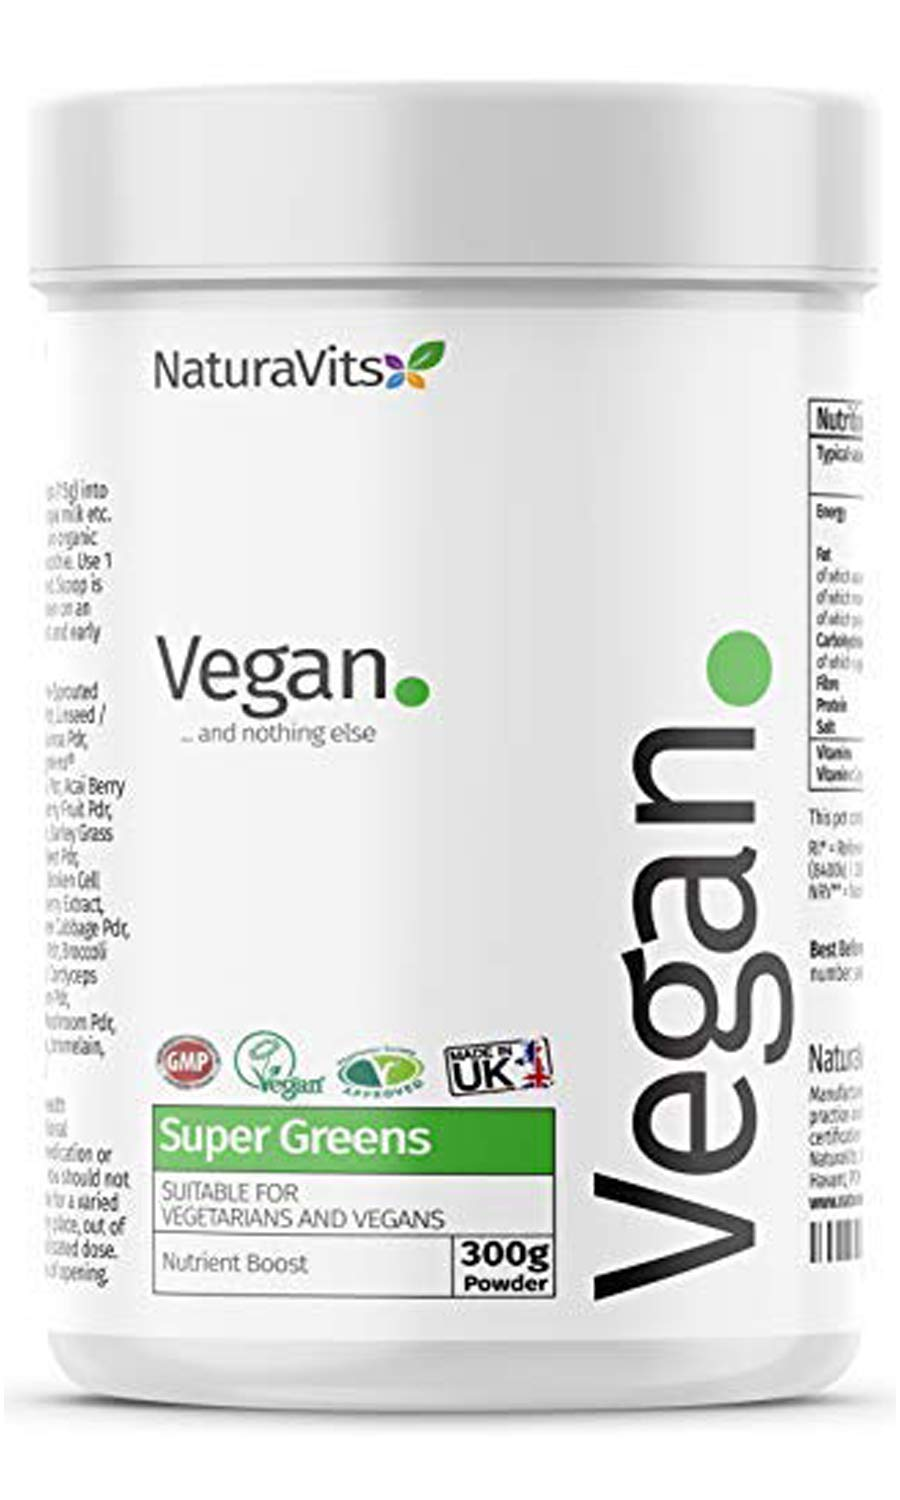 NaturaVits Vegan Super Greens Powder Vegan and Nothing Else Made in The UK product image